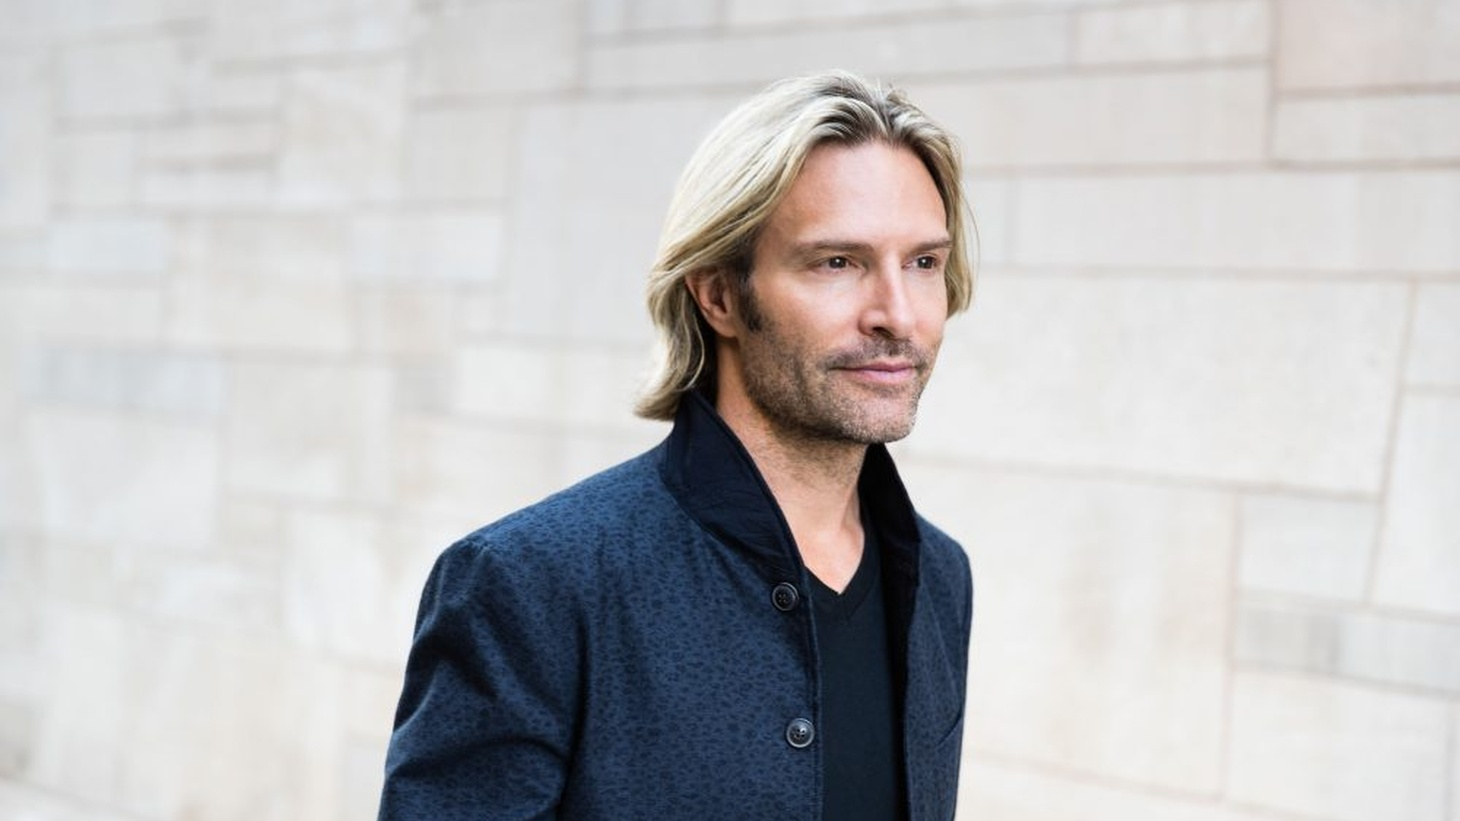 Composer/conductor Eric Whitacre